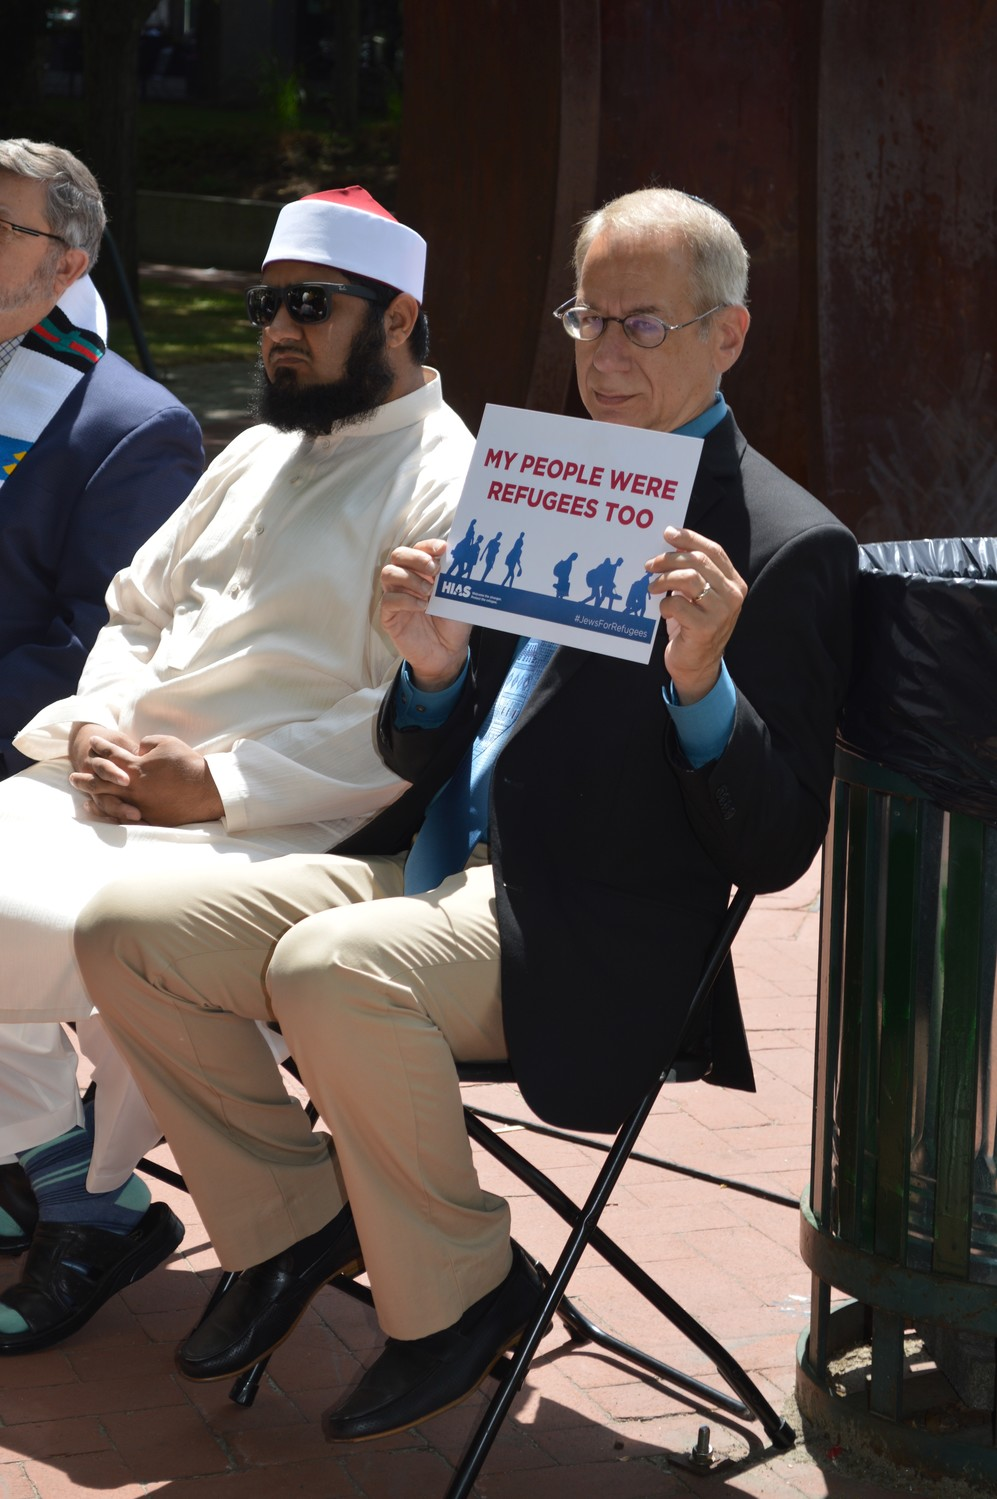 Rabbi Howard Voss-Altman holds a sign from HIAS